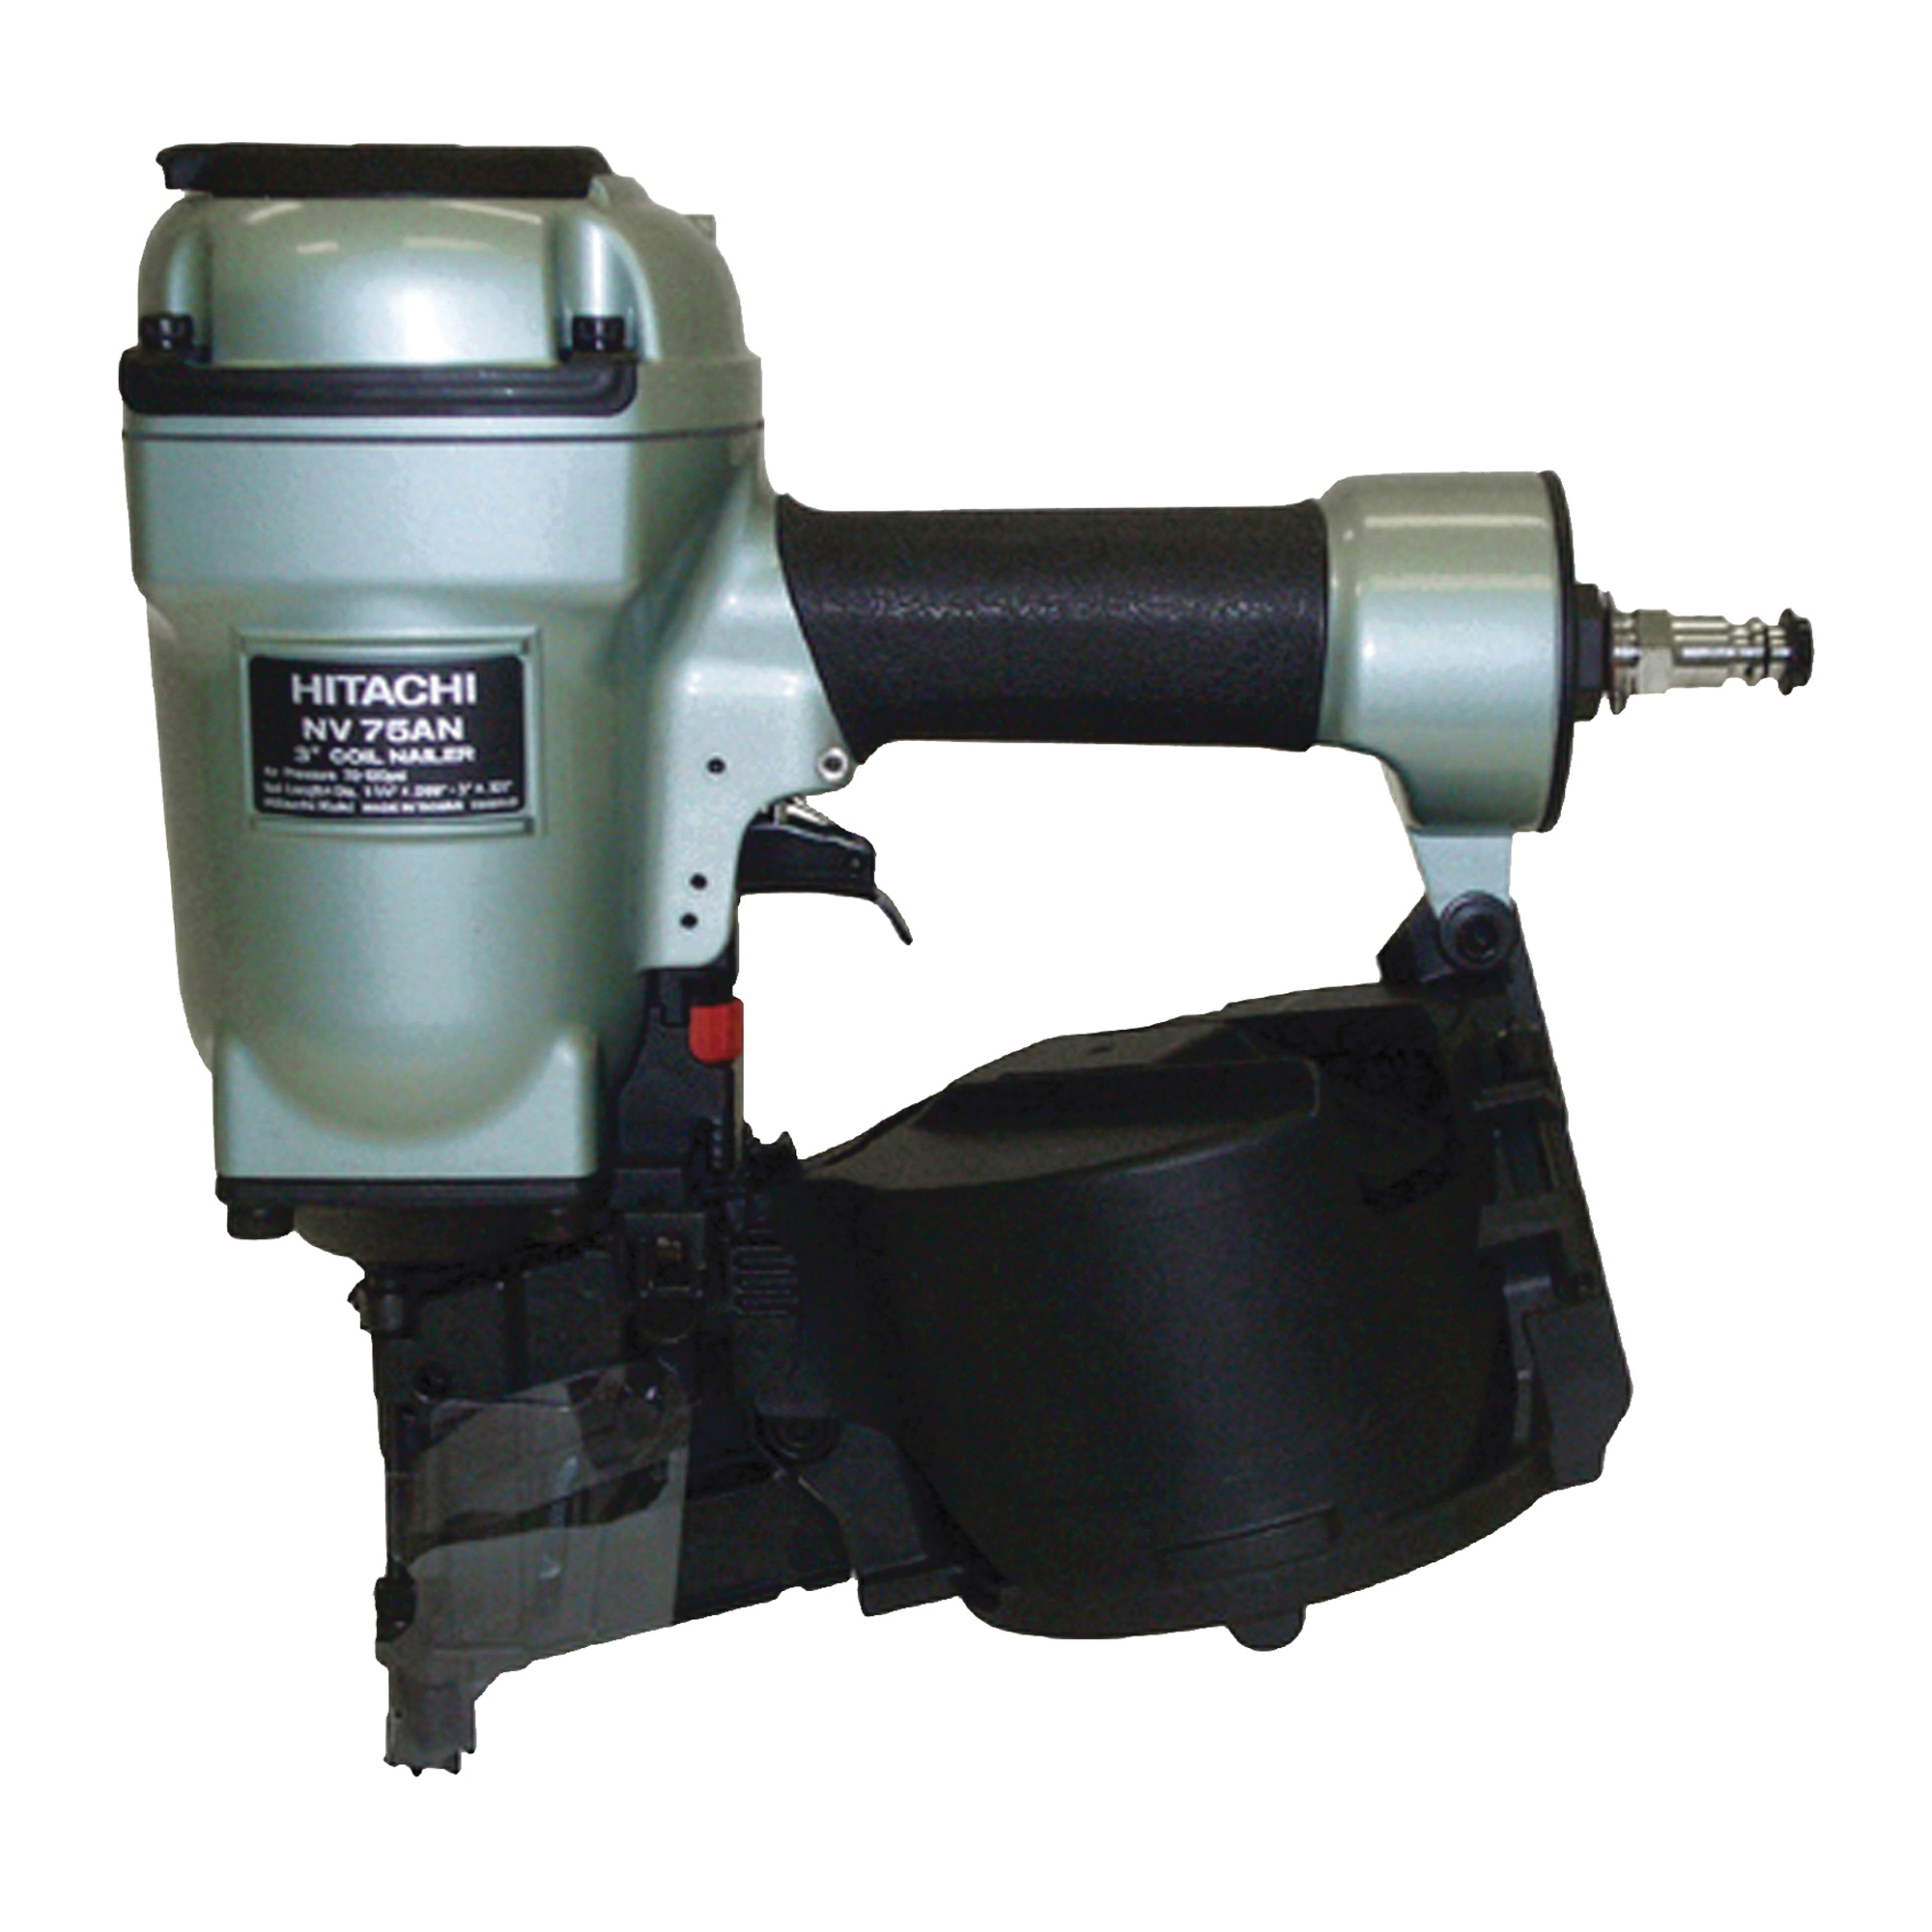 Picture of HITACHI NV75AN Siding/Framing Nailer, 200 to 300 Magazine, 16 deg Collation, Wire Weld Collation